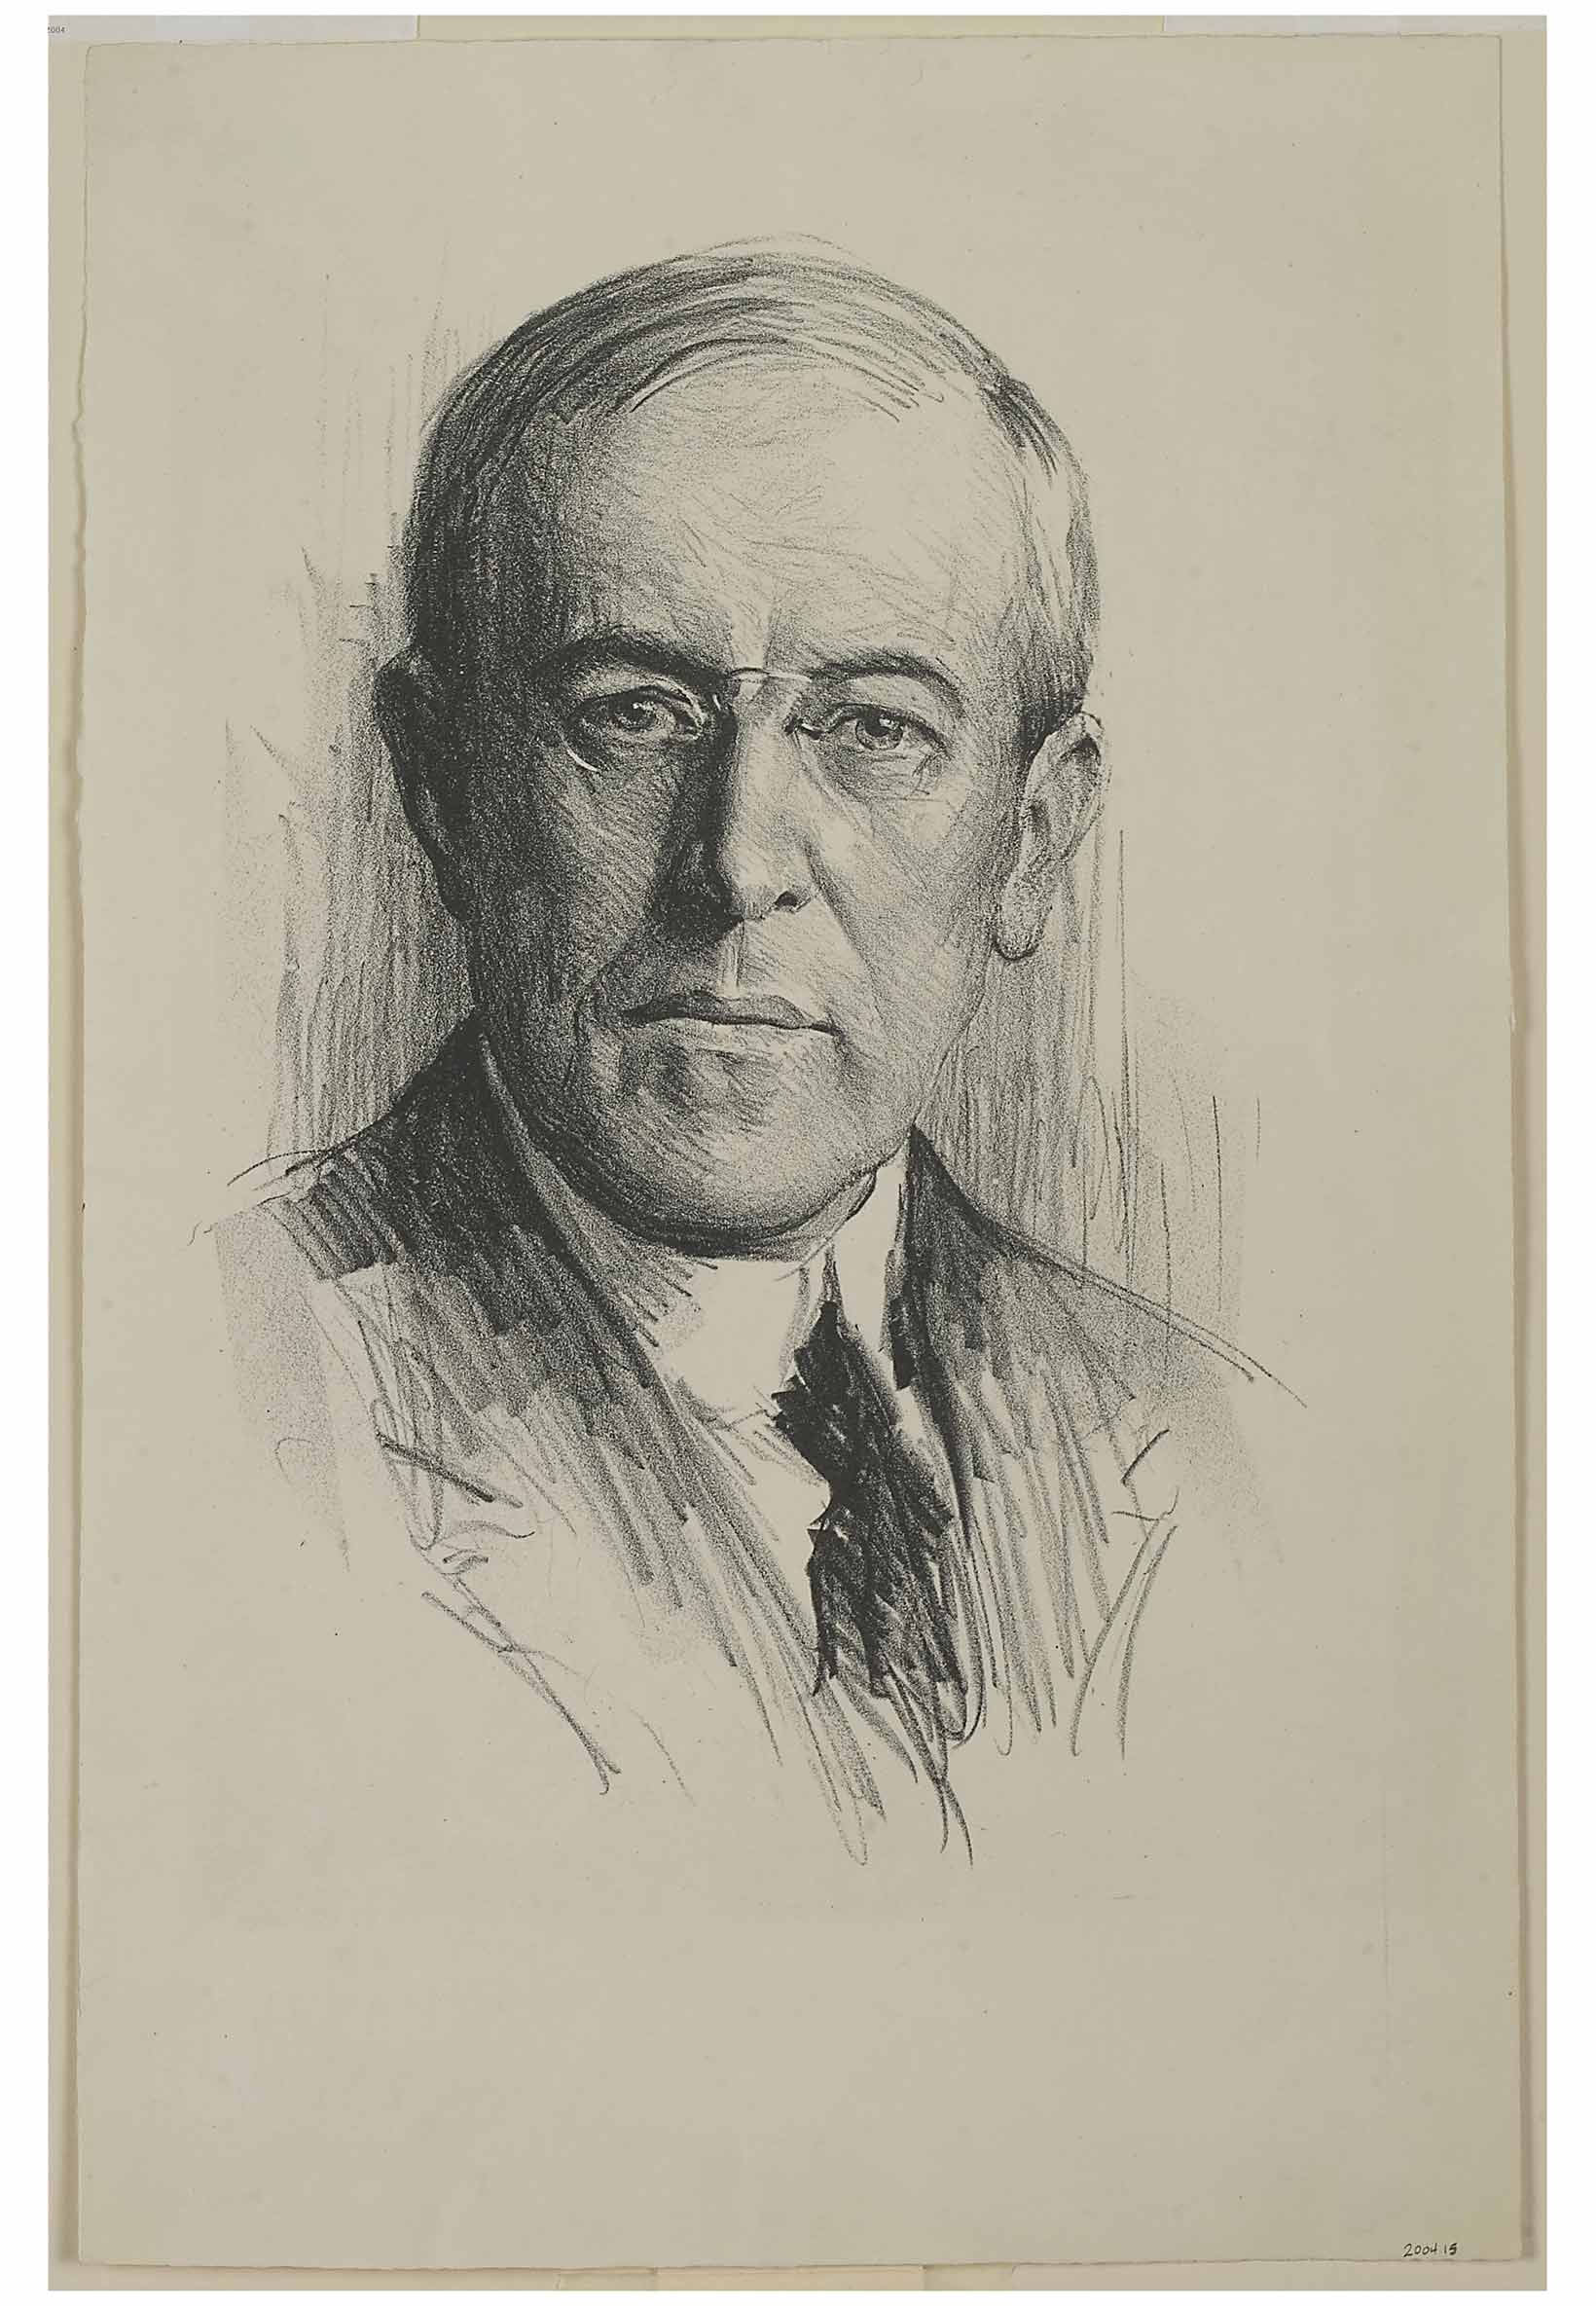 artwork of former first lady ellen axson wilson in old lyme ct samuel j woolf 1880 1949 portrait of woodrow wilson ca 1910 20 lithograph on paper florence griswold museum gift of mr and mrs stuart p feld